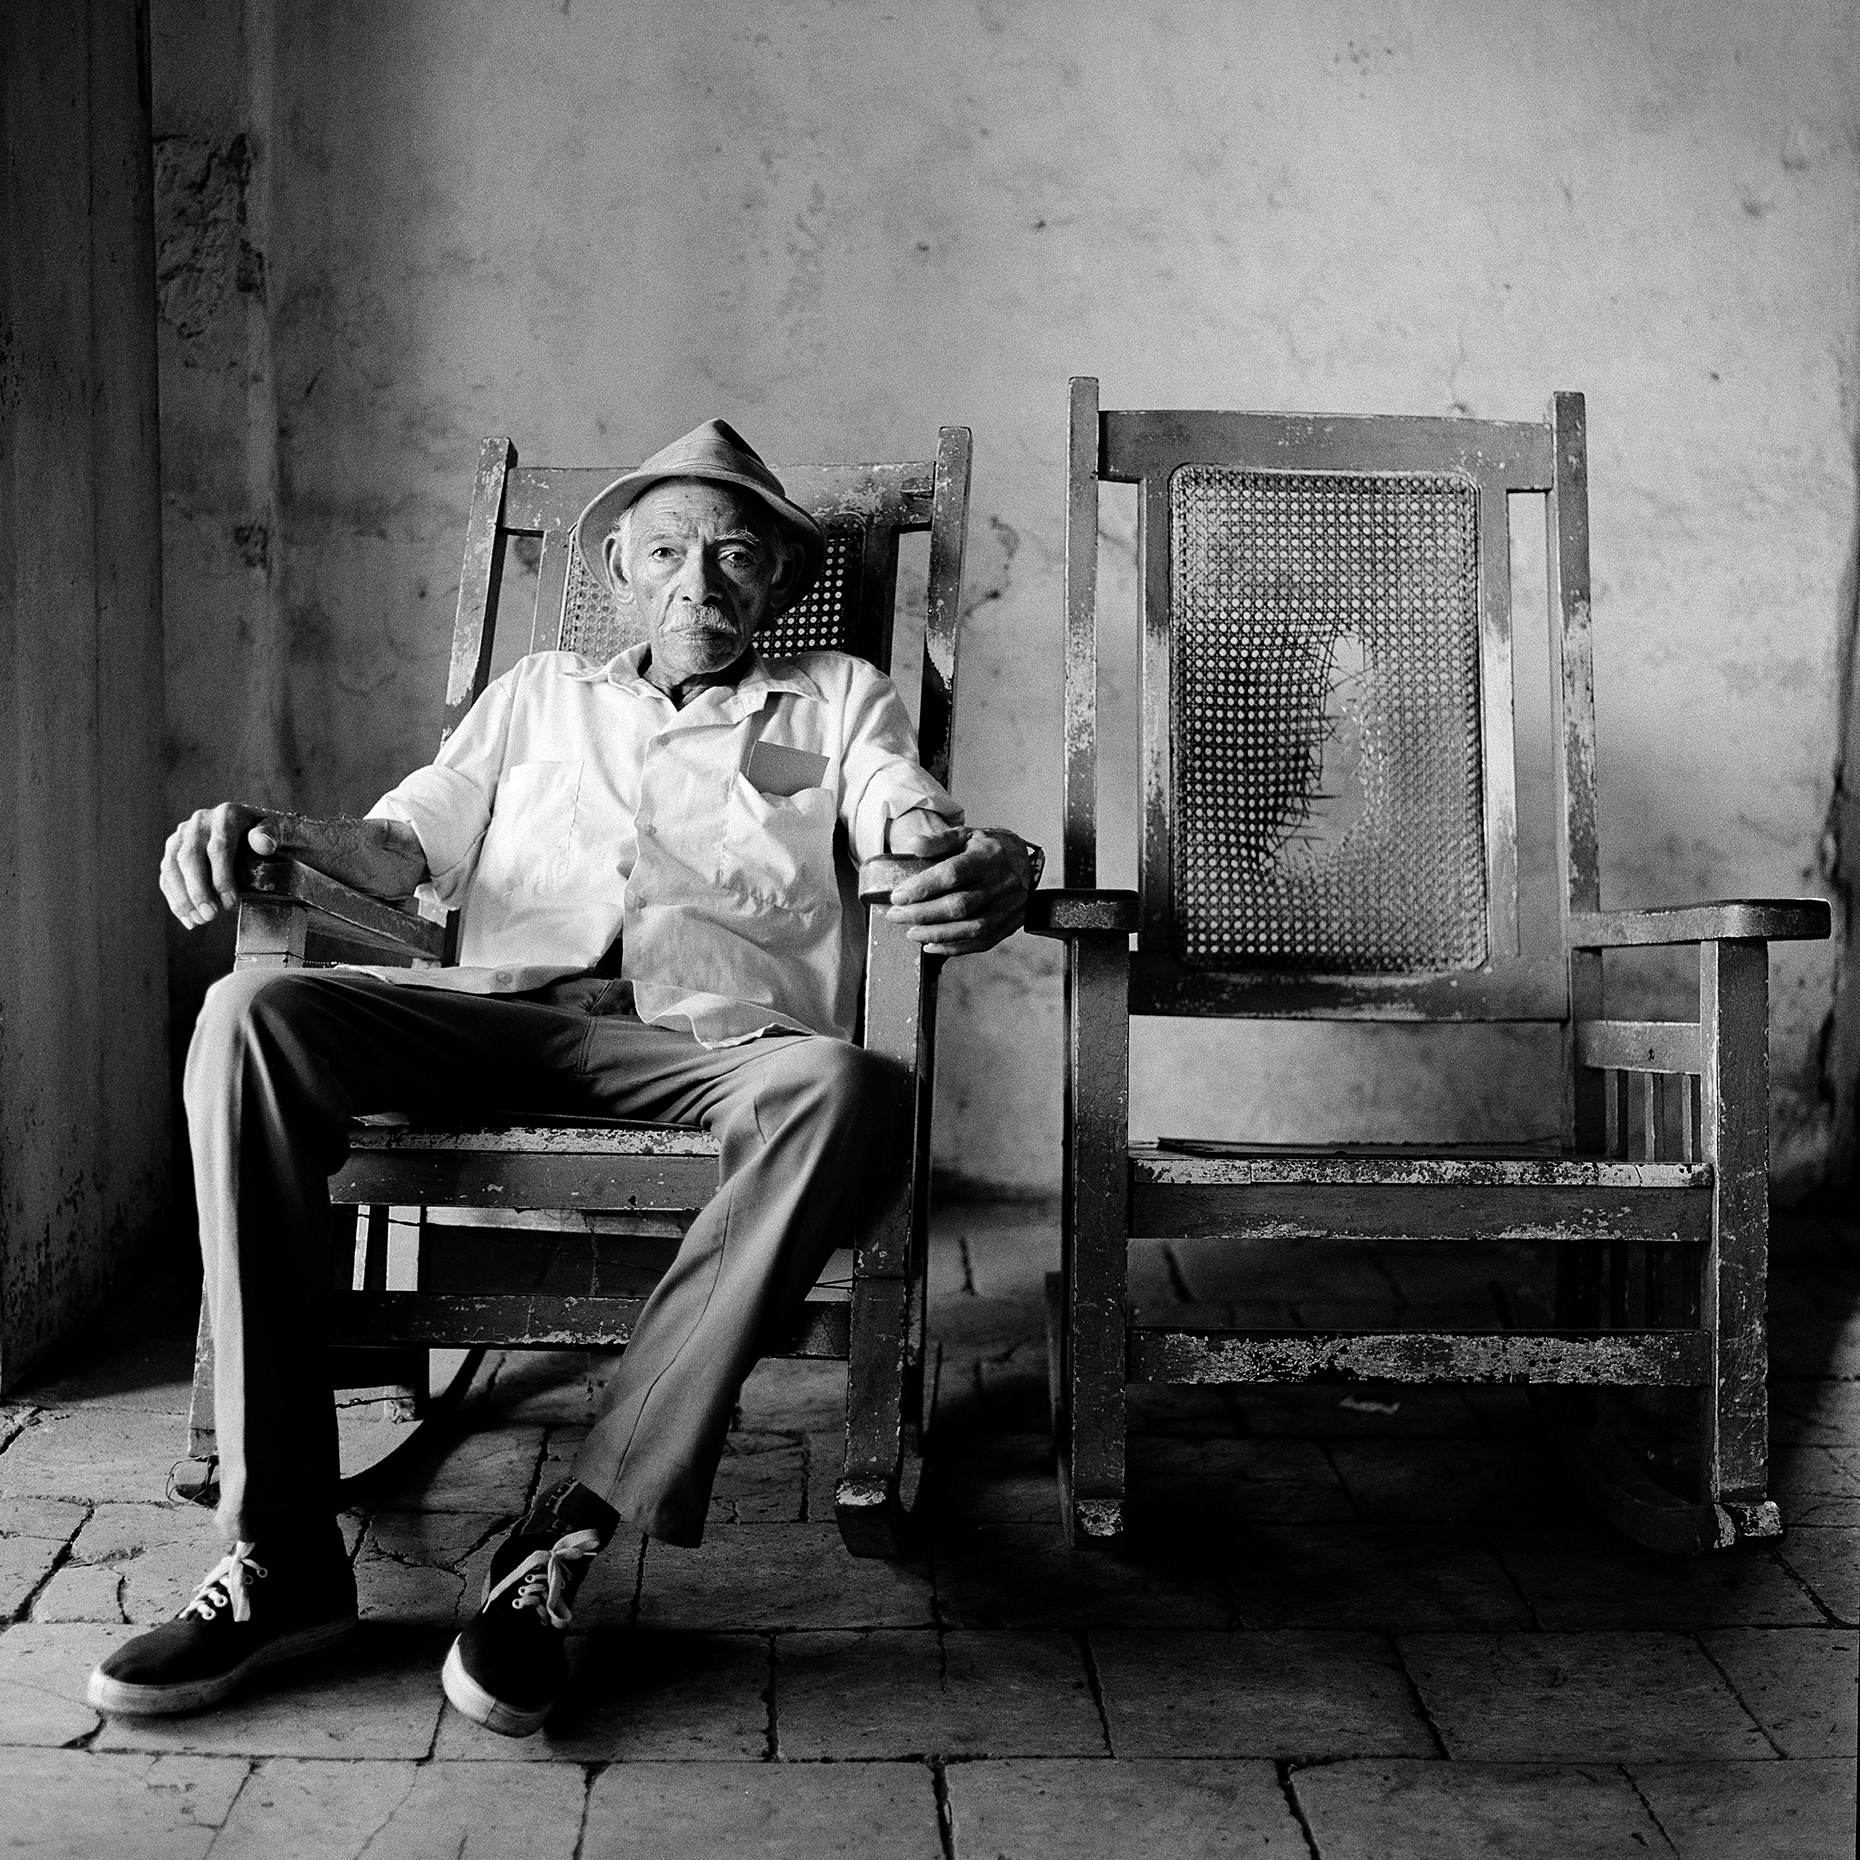 cuba_man_in_chair_2.jpg